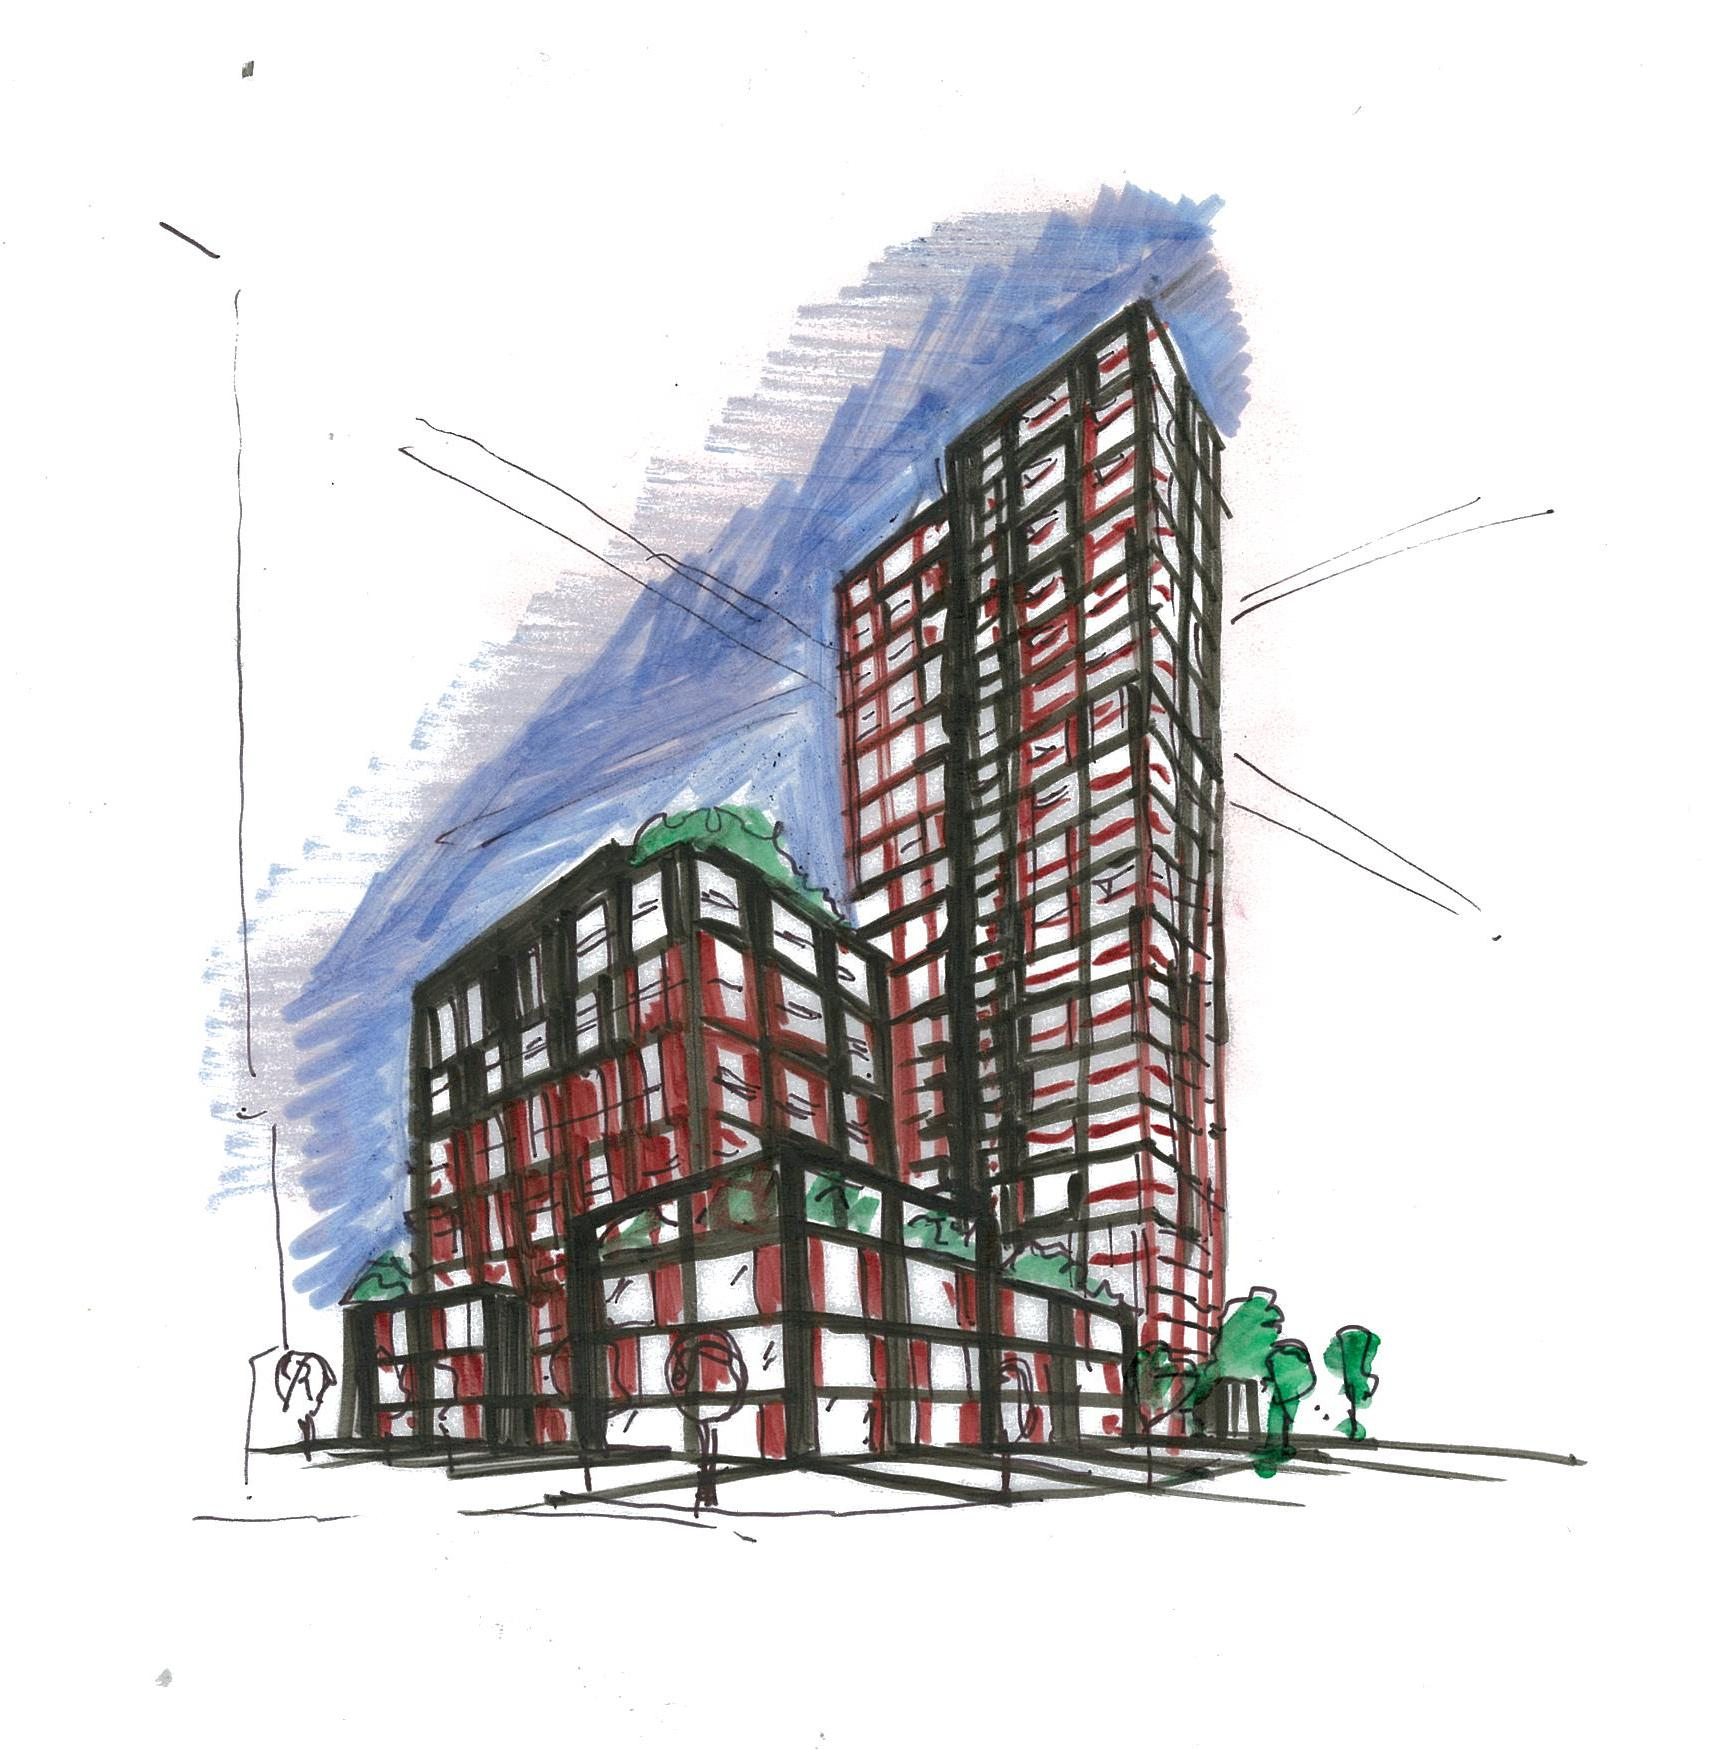 coloured hand-drawn sketch of Artworks Tower condominium